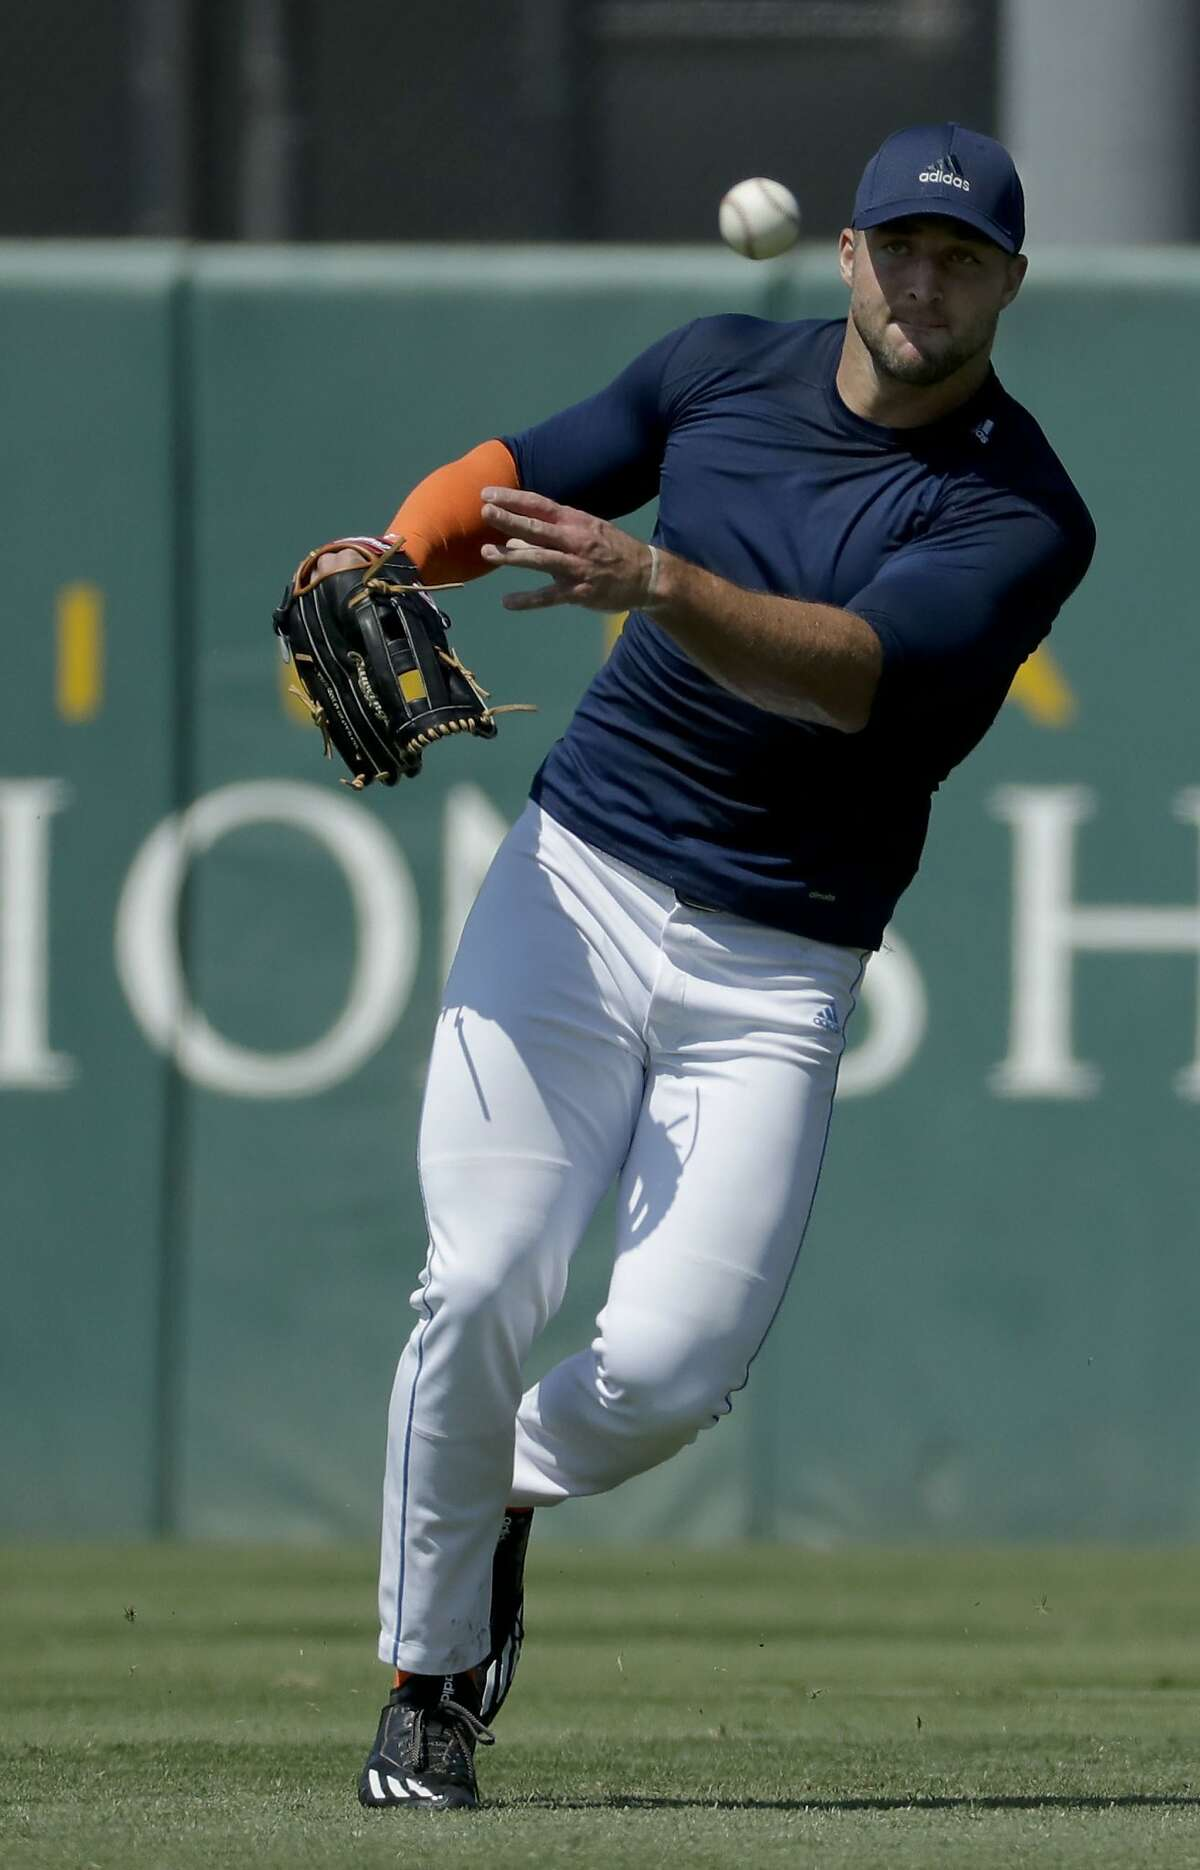 Former NFL quarterback, Tim Tebow fields a fly ball for baseball scouts and the media during a showcase on the campus of the University of Southern California, Tuesday, Aug. 30, 2016 in Los Angeles. The Heisman Trophy winner works out for a big gathering of scouts on USC's campus in an attempt to start a career in a sport he hasn't played regularly since high school. (AP Photo/Chris Carlson)